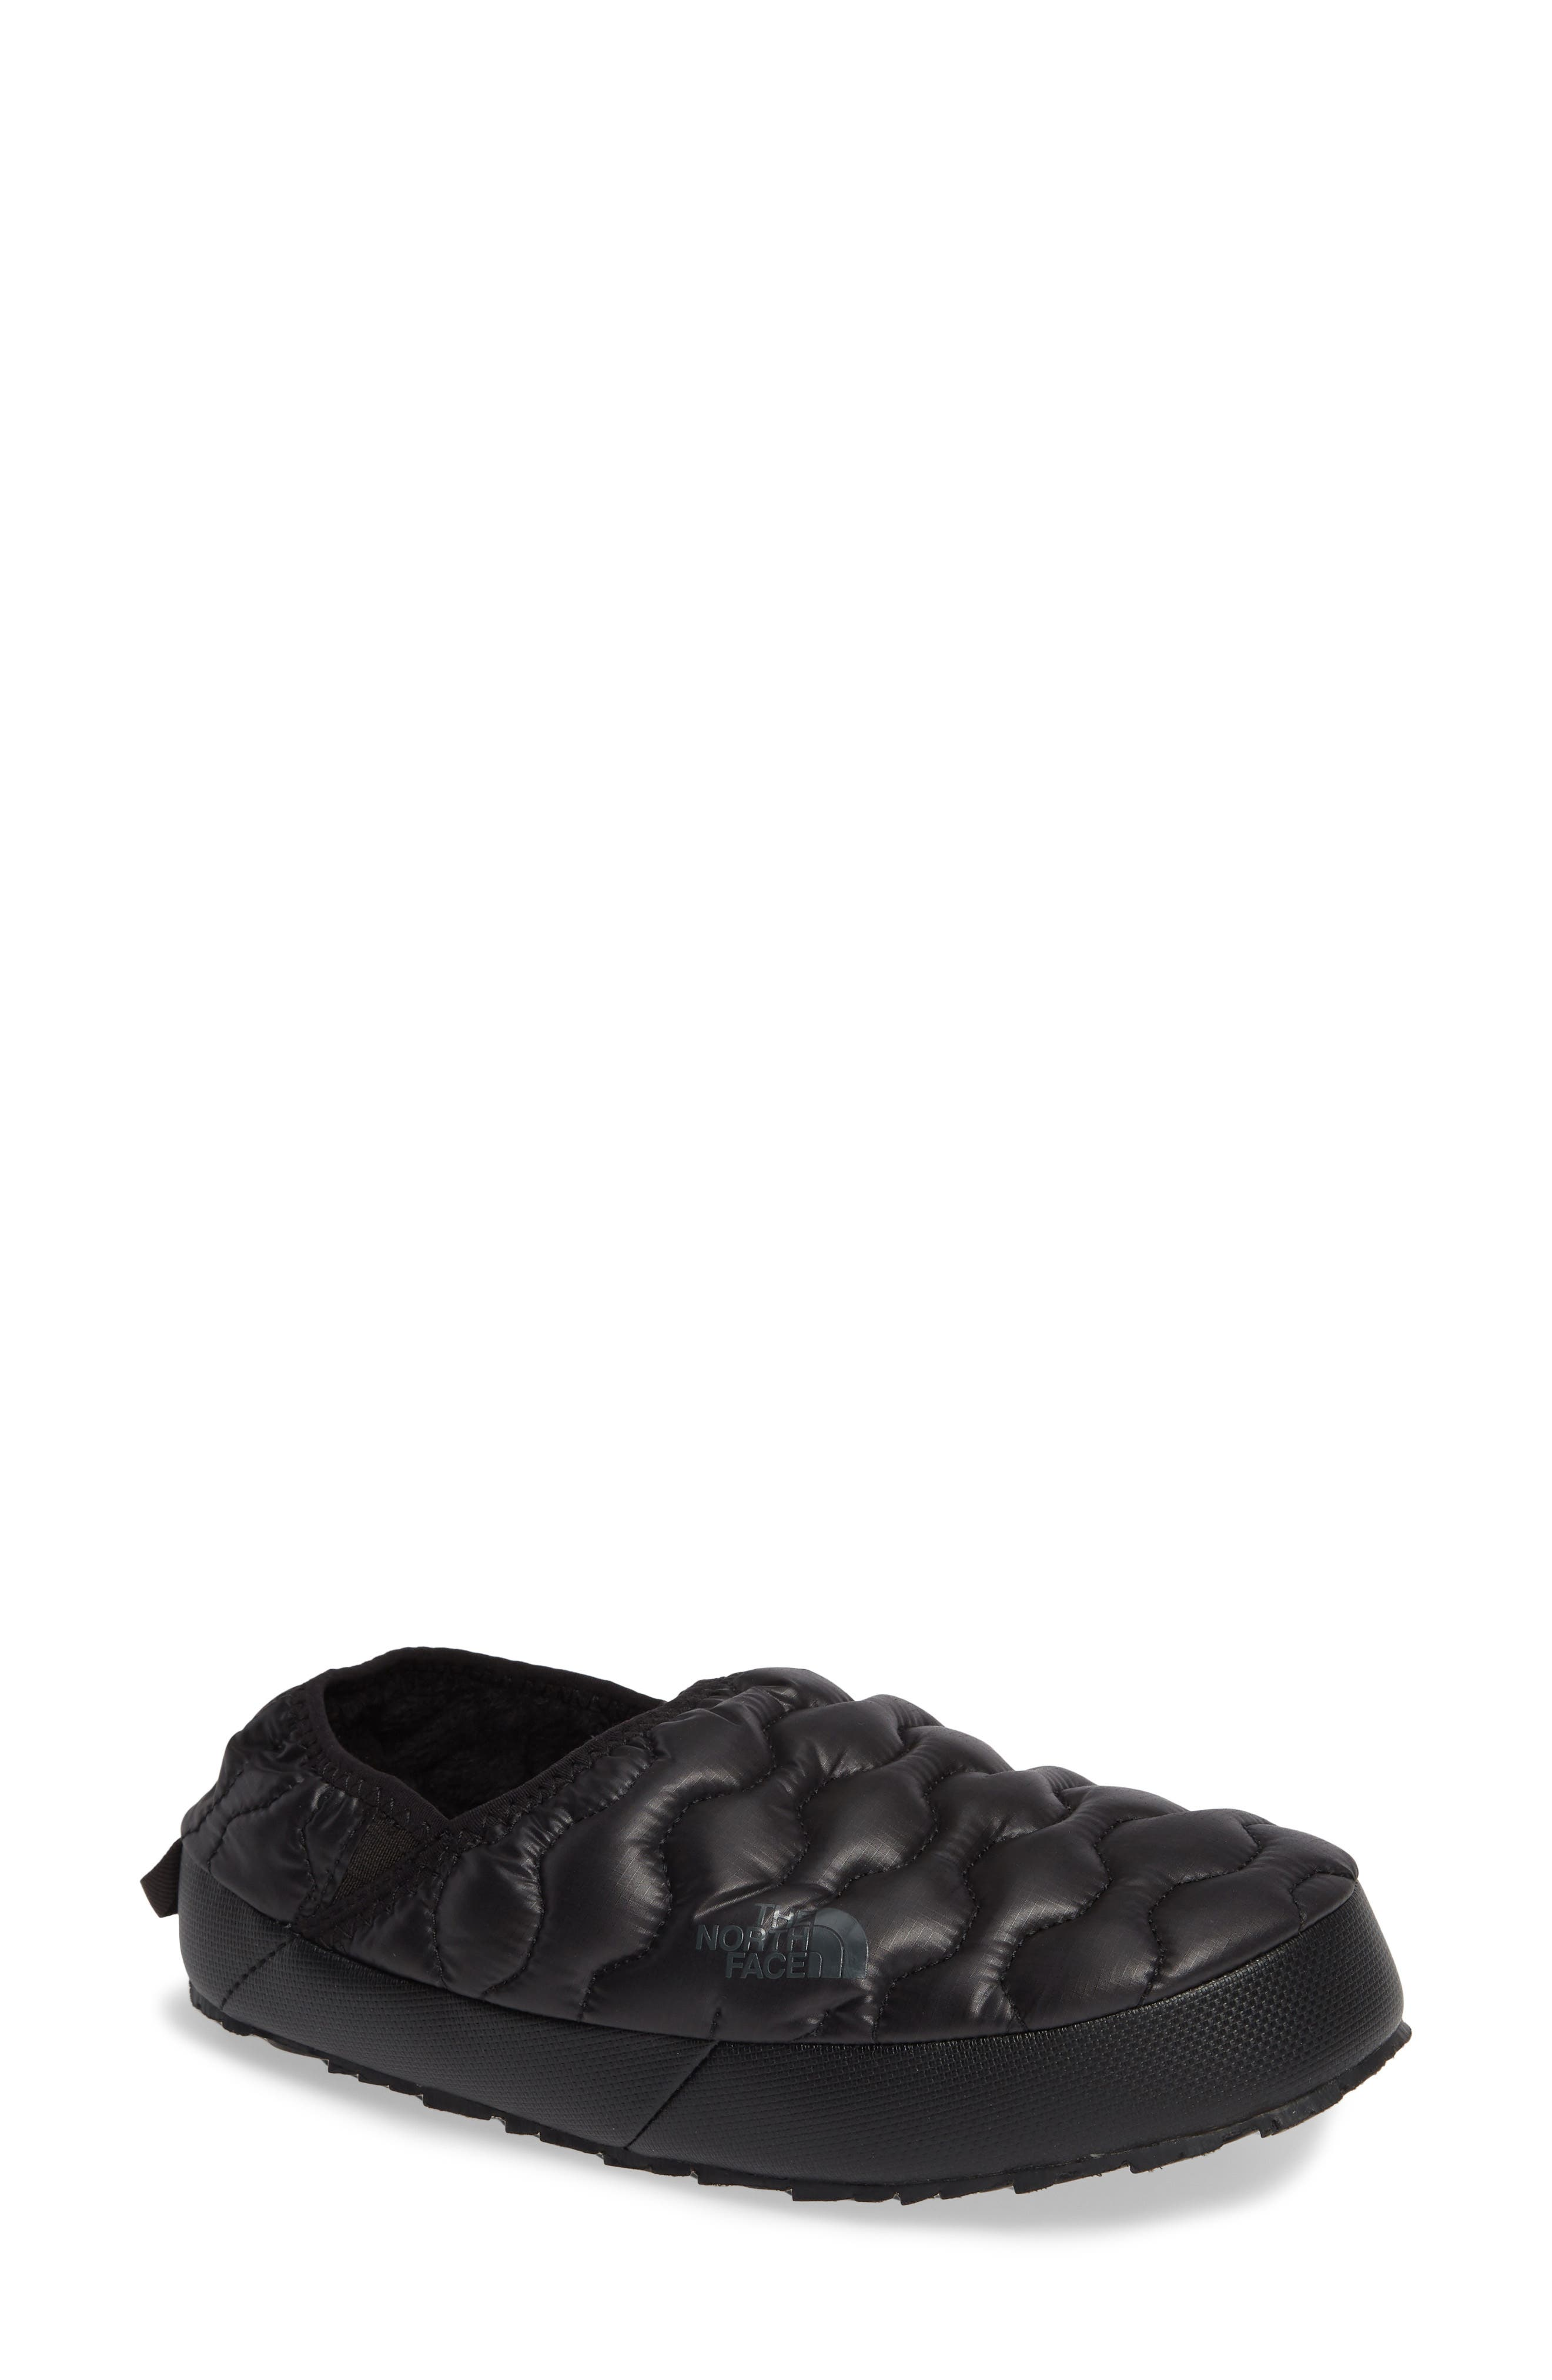 THE NORTH FACE, Thermoball<sup>™</sup> Water Resistant Traction Mule, Main thumbnail 1, color, SHINY BLACK/ BELUGA GREY